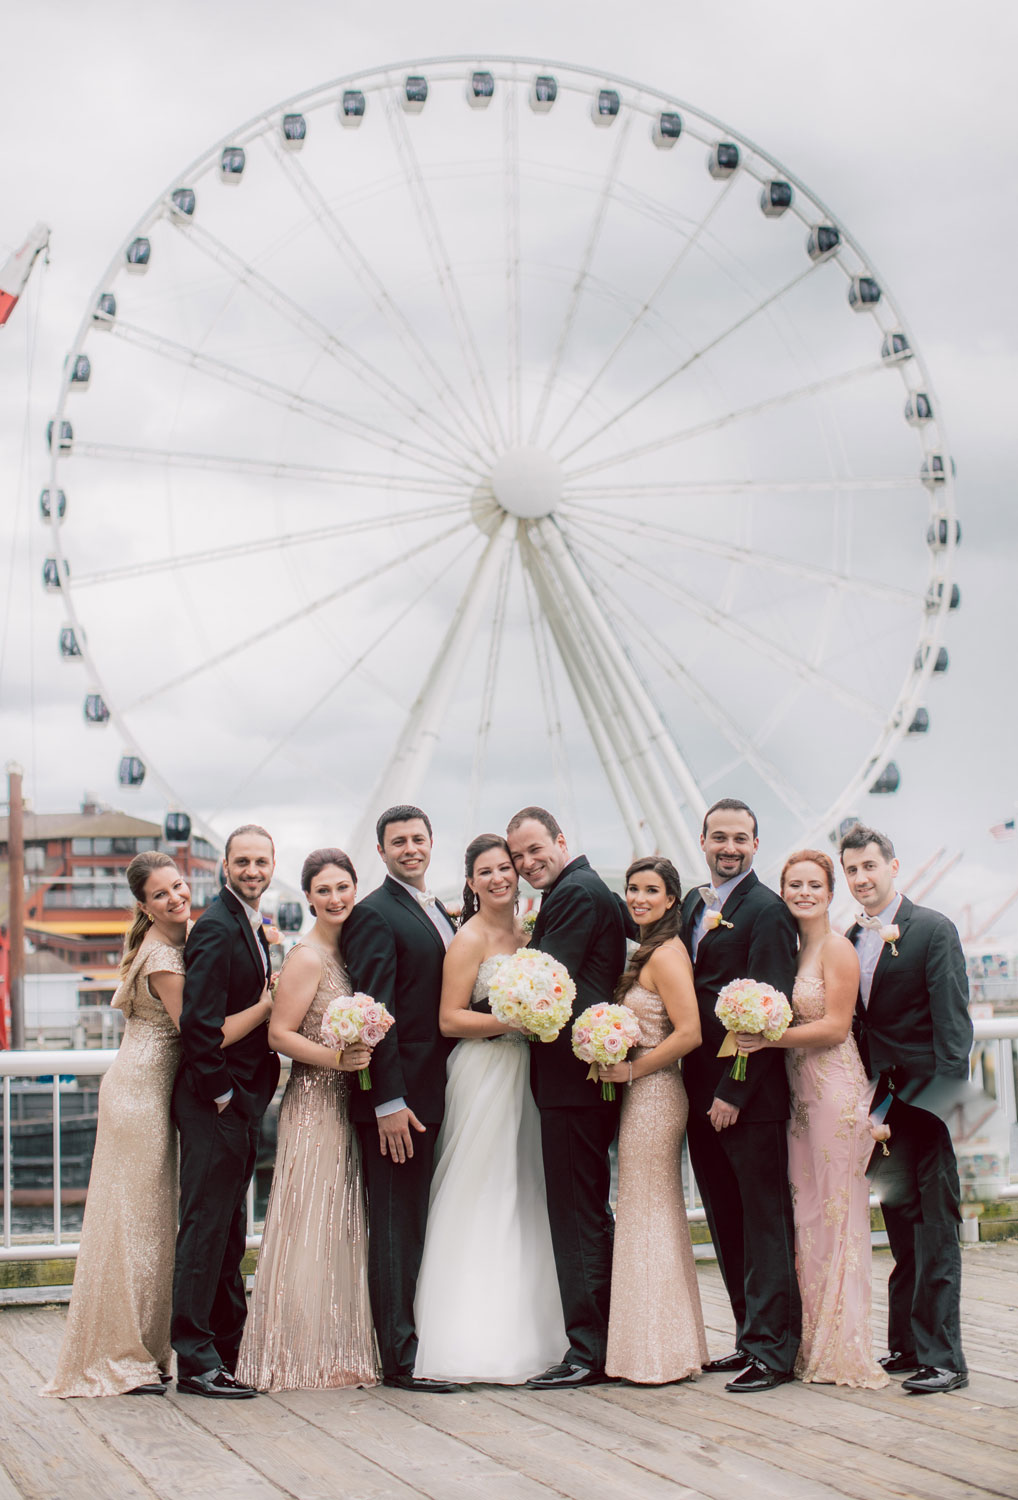 four-seasons-seattle-wedding-clane-gessel-photos-17